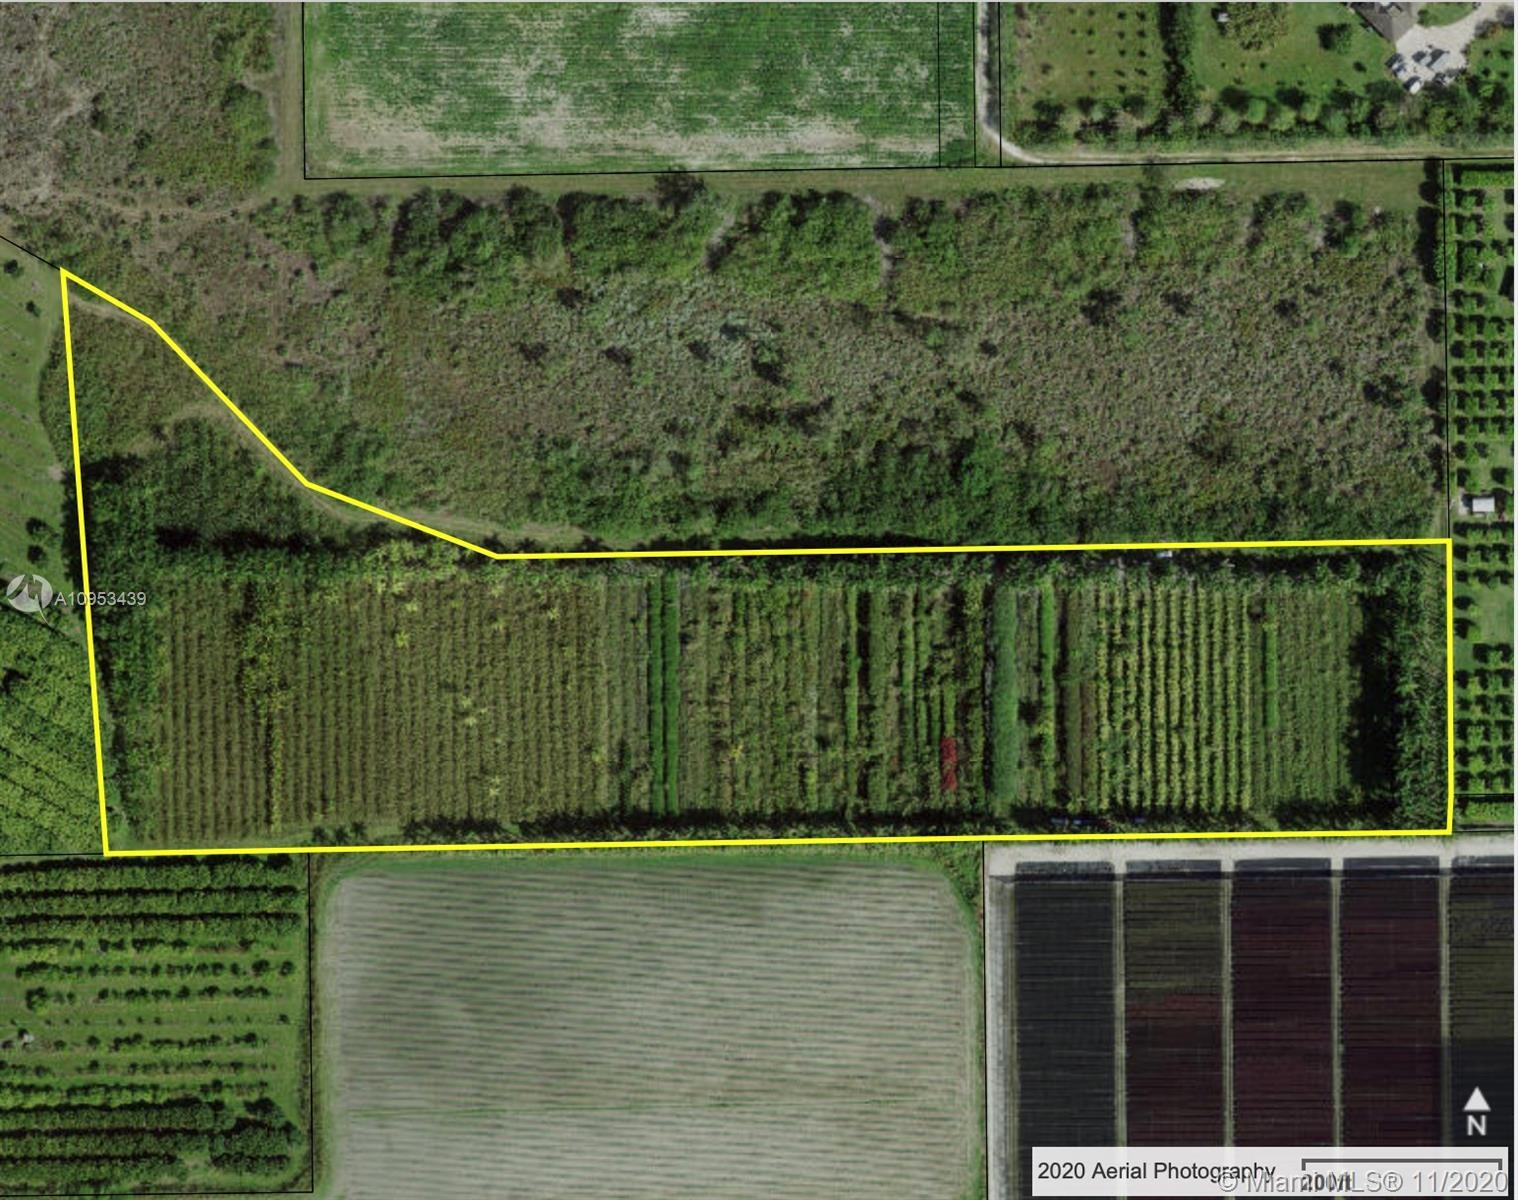 SW 208 St & SW 147 Ave, Unincorporated Dade County, FL 33177